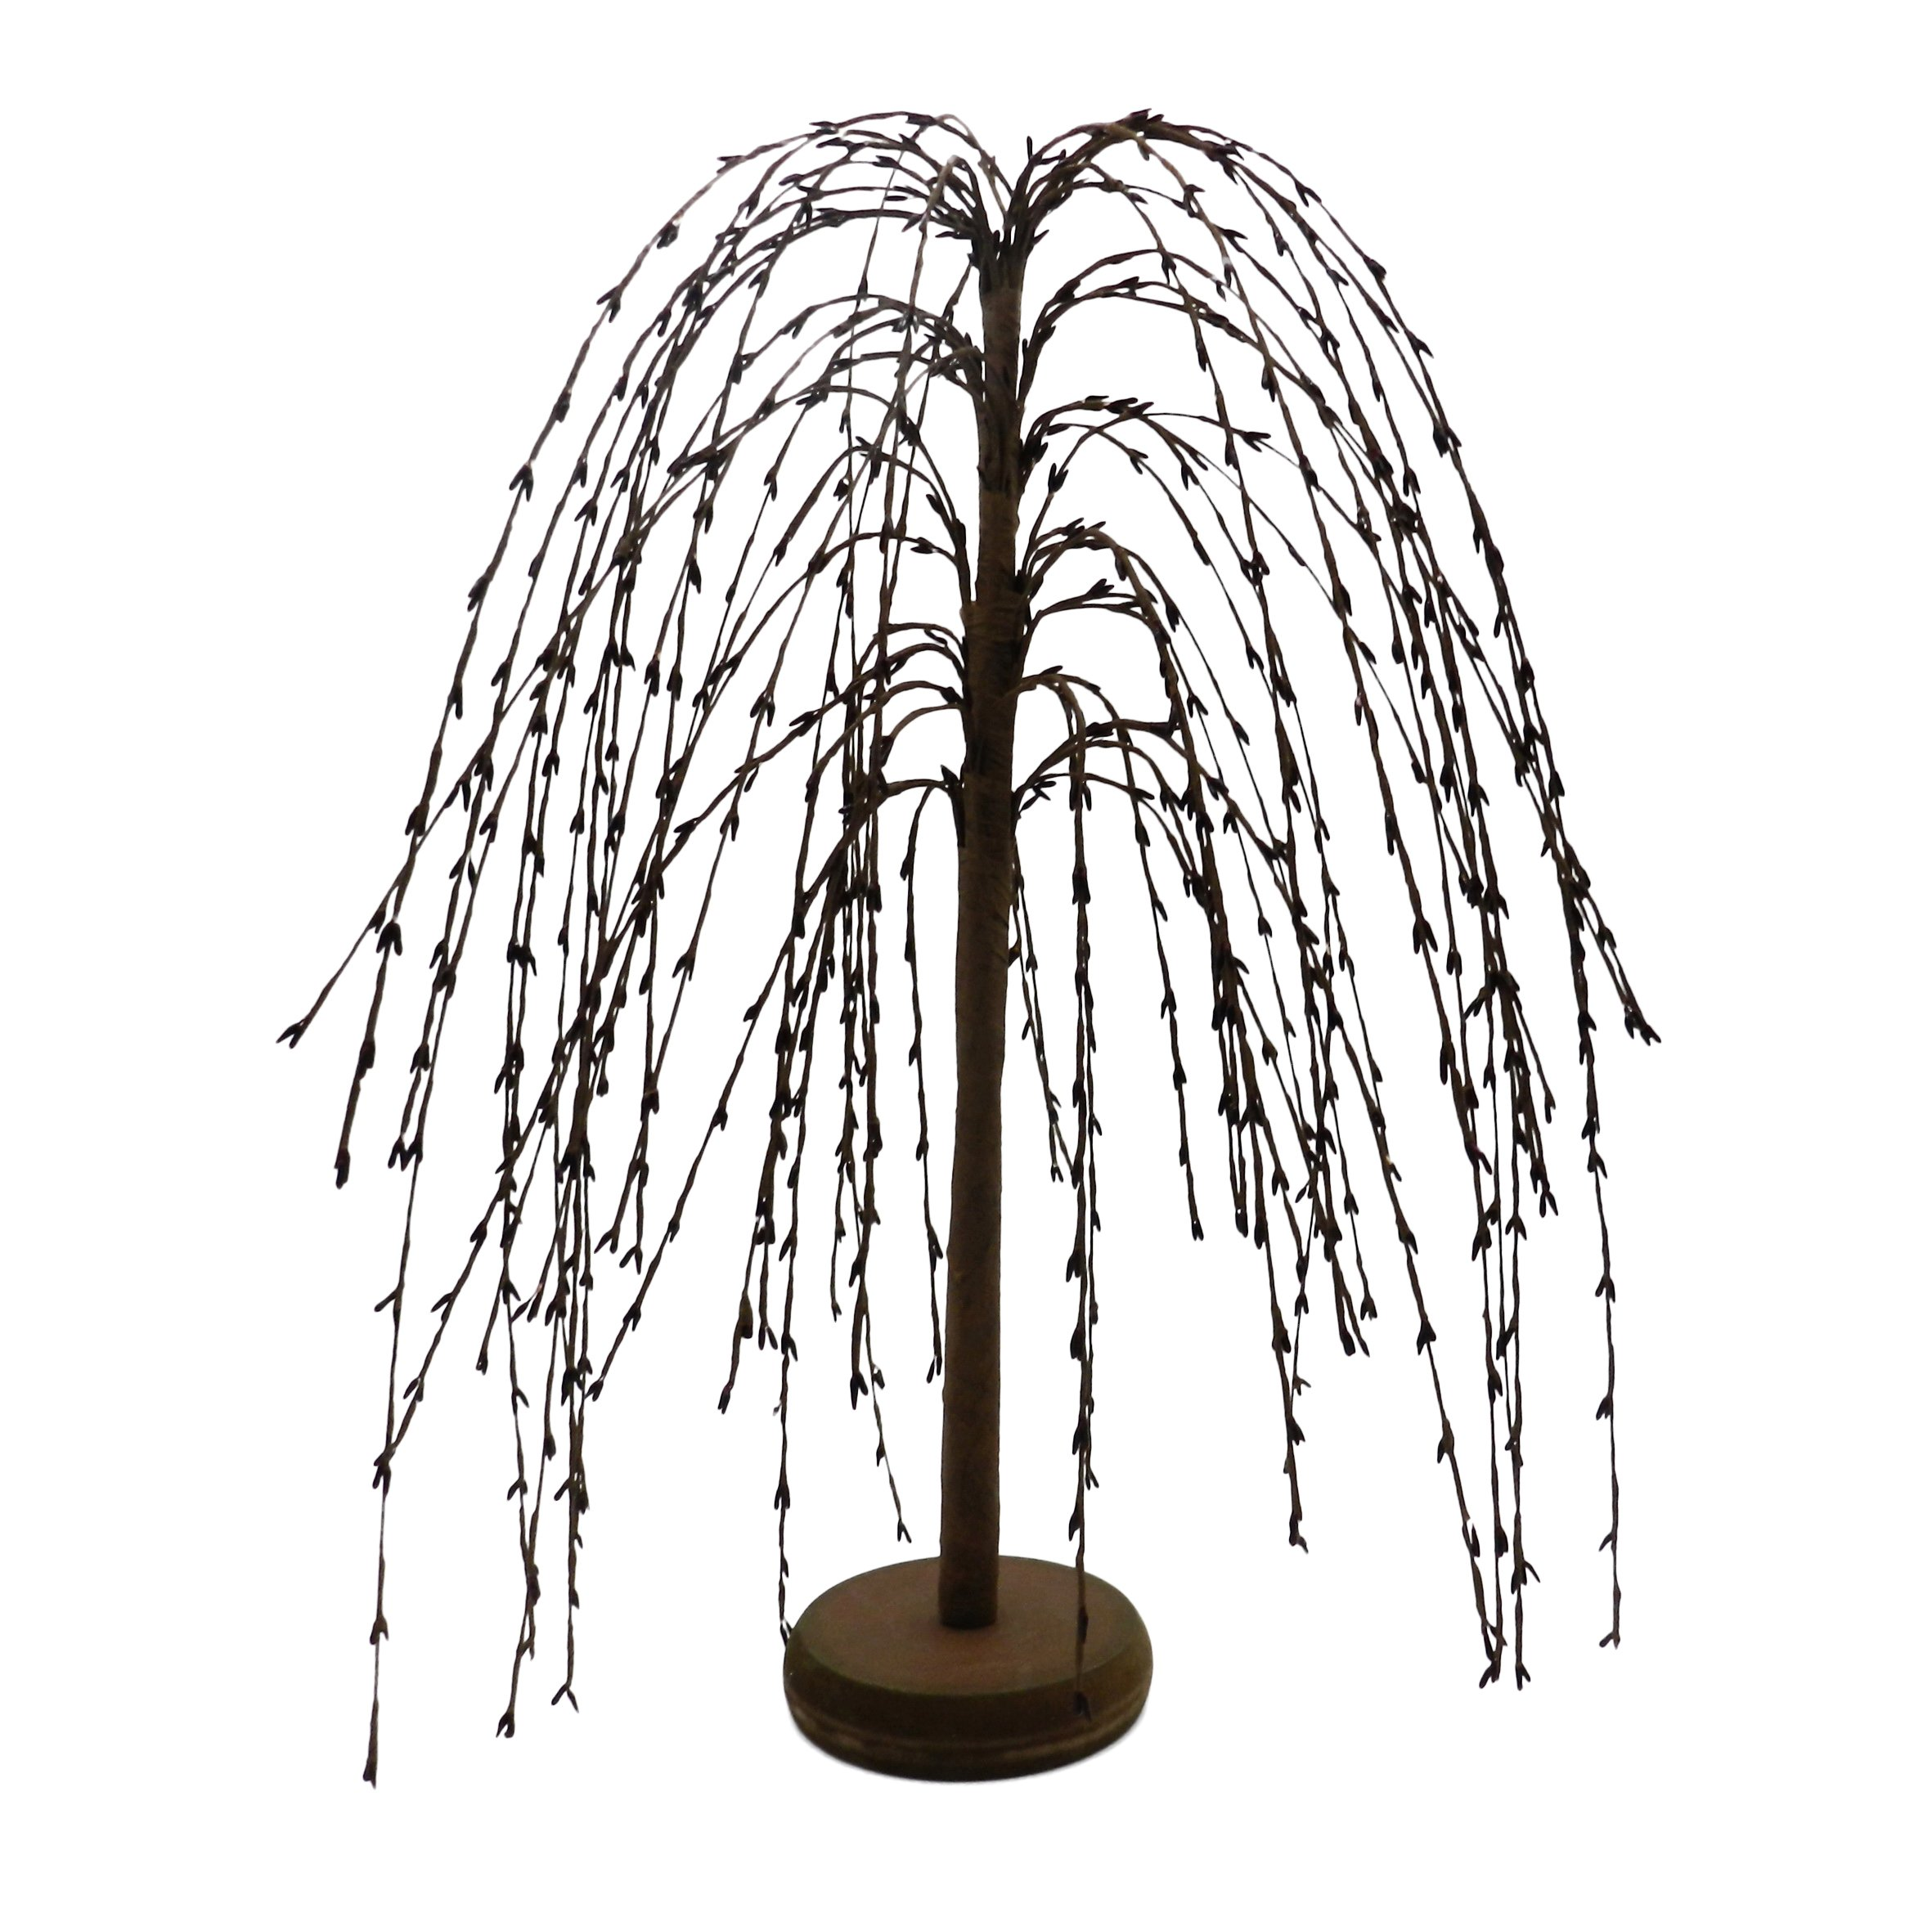 CVHOMEDECO. Burgundy Pip Berry Weeping Willow Tree Primitive Vintage Decoration Art, 18-Inch